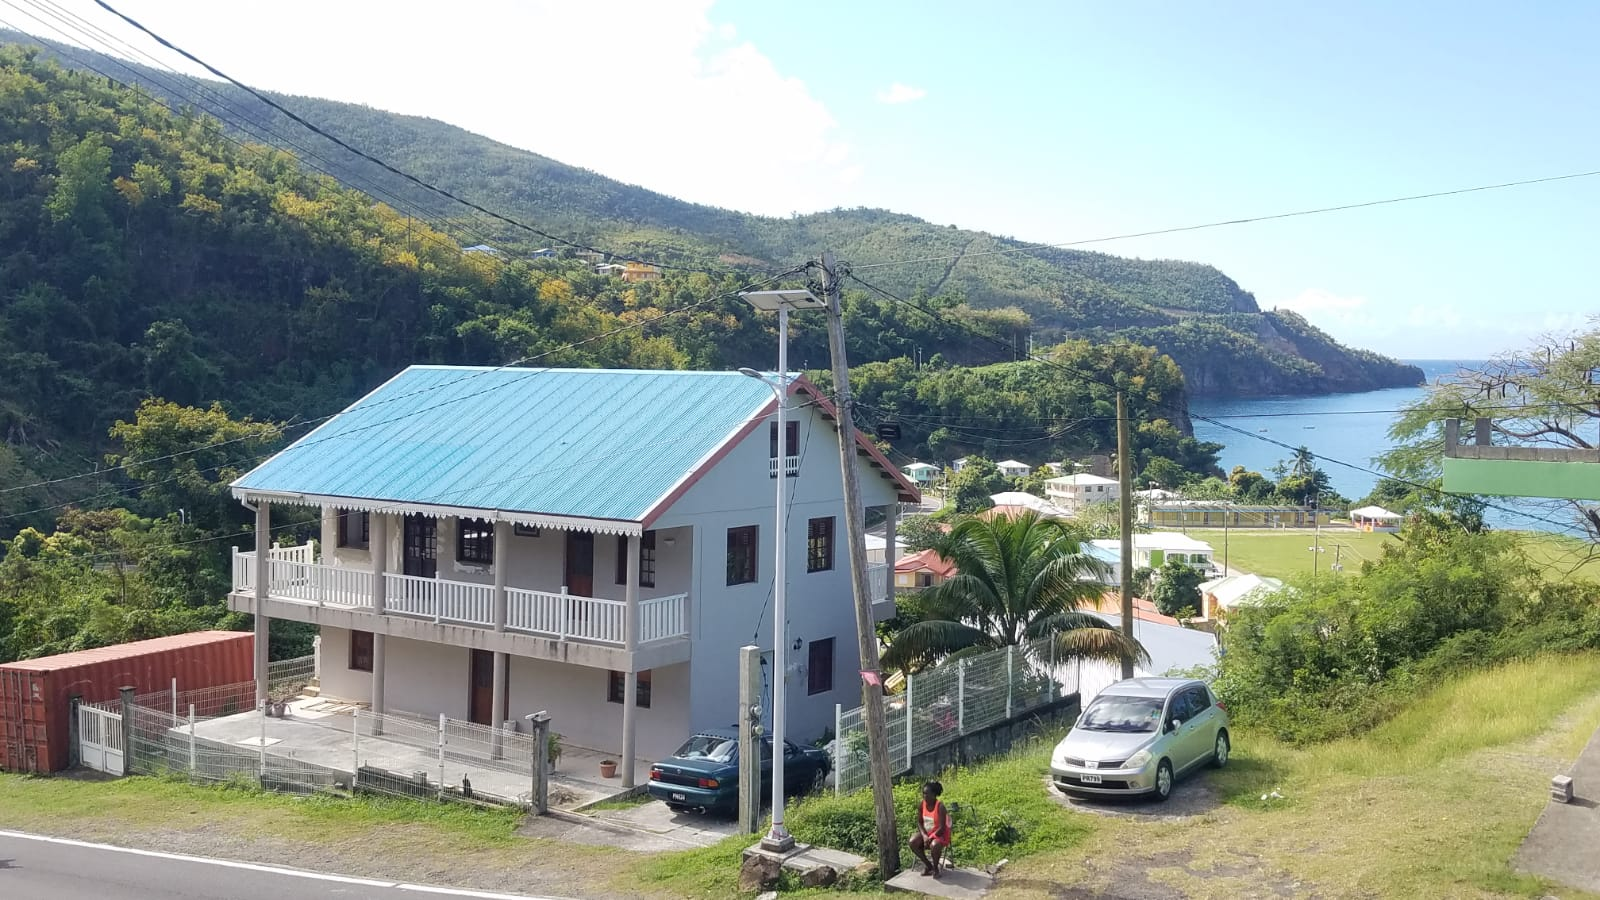 3 Bedroom Apartment For Rent In Dublanc (RENTED OUT)